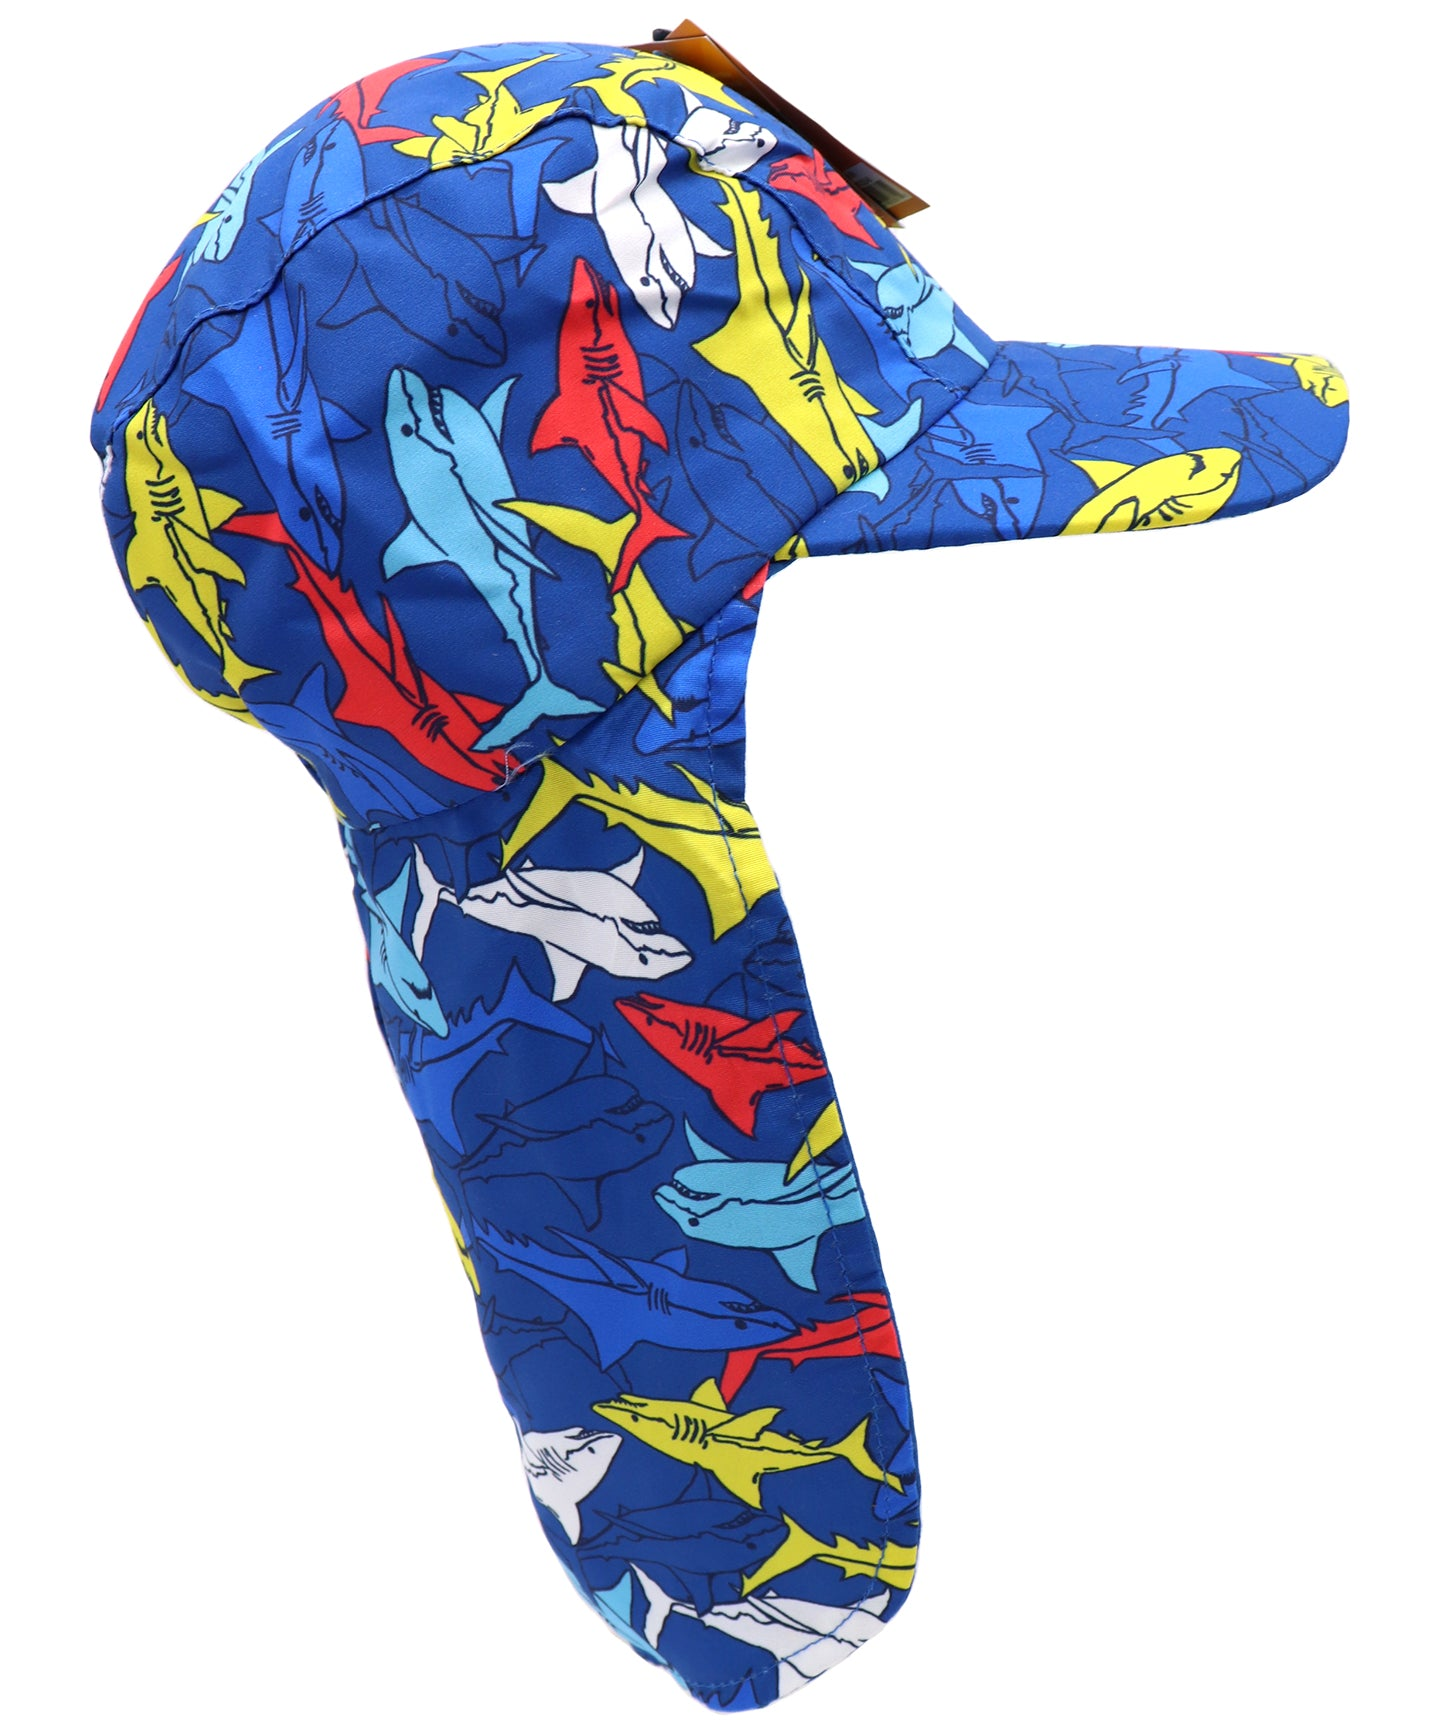 Kids neck guard hat with UPF 50+, ultra violet protection factor. Fit for toddlers, small children, and infants. Ideal for sunny days, beach, pool, and hiking walks. Print of colorful solid sharks : red, yellow, grey, and blue. Sold by SDTrading Co.